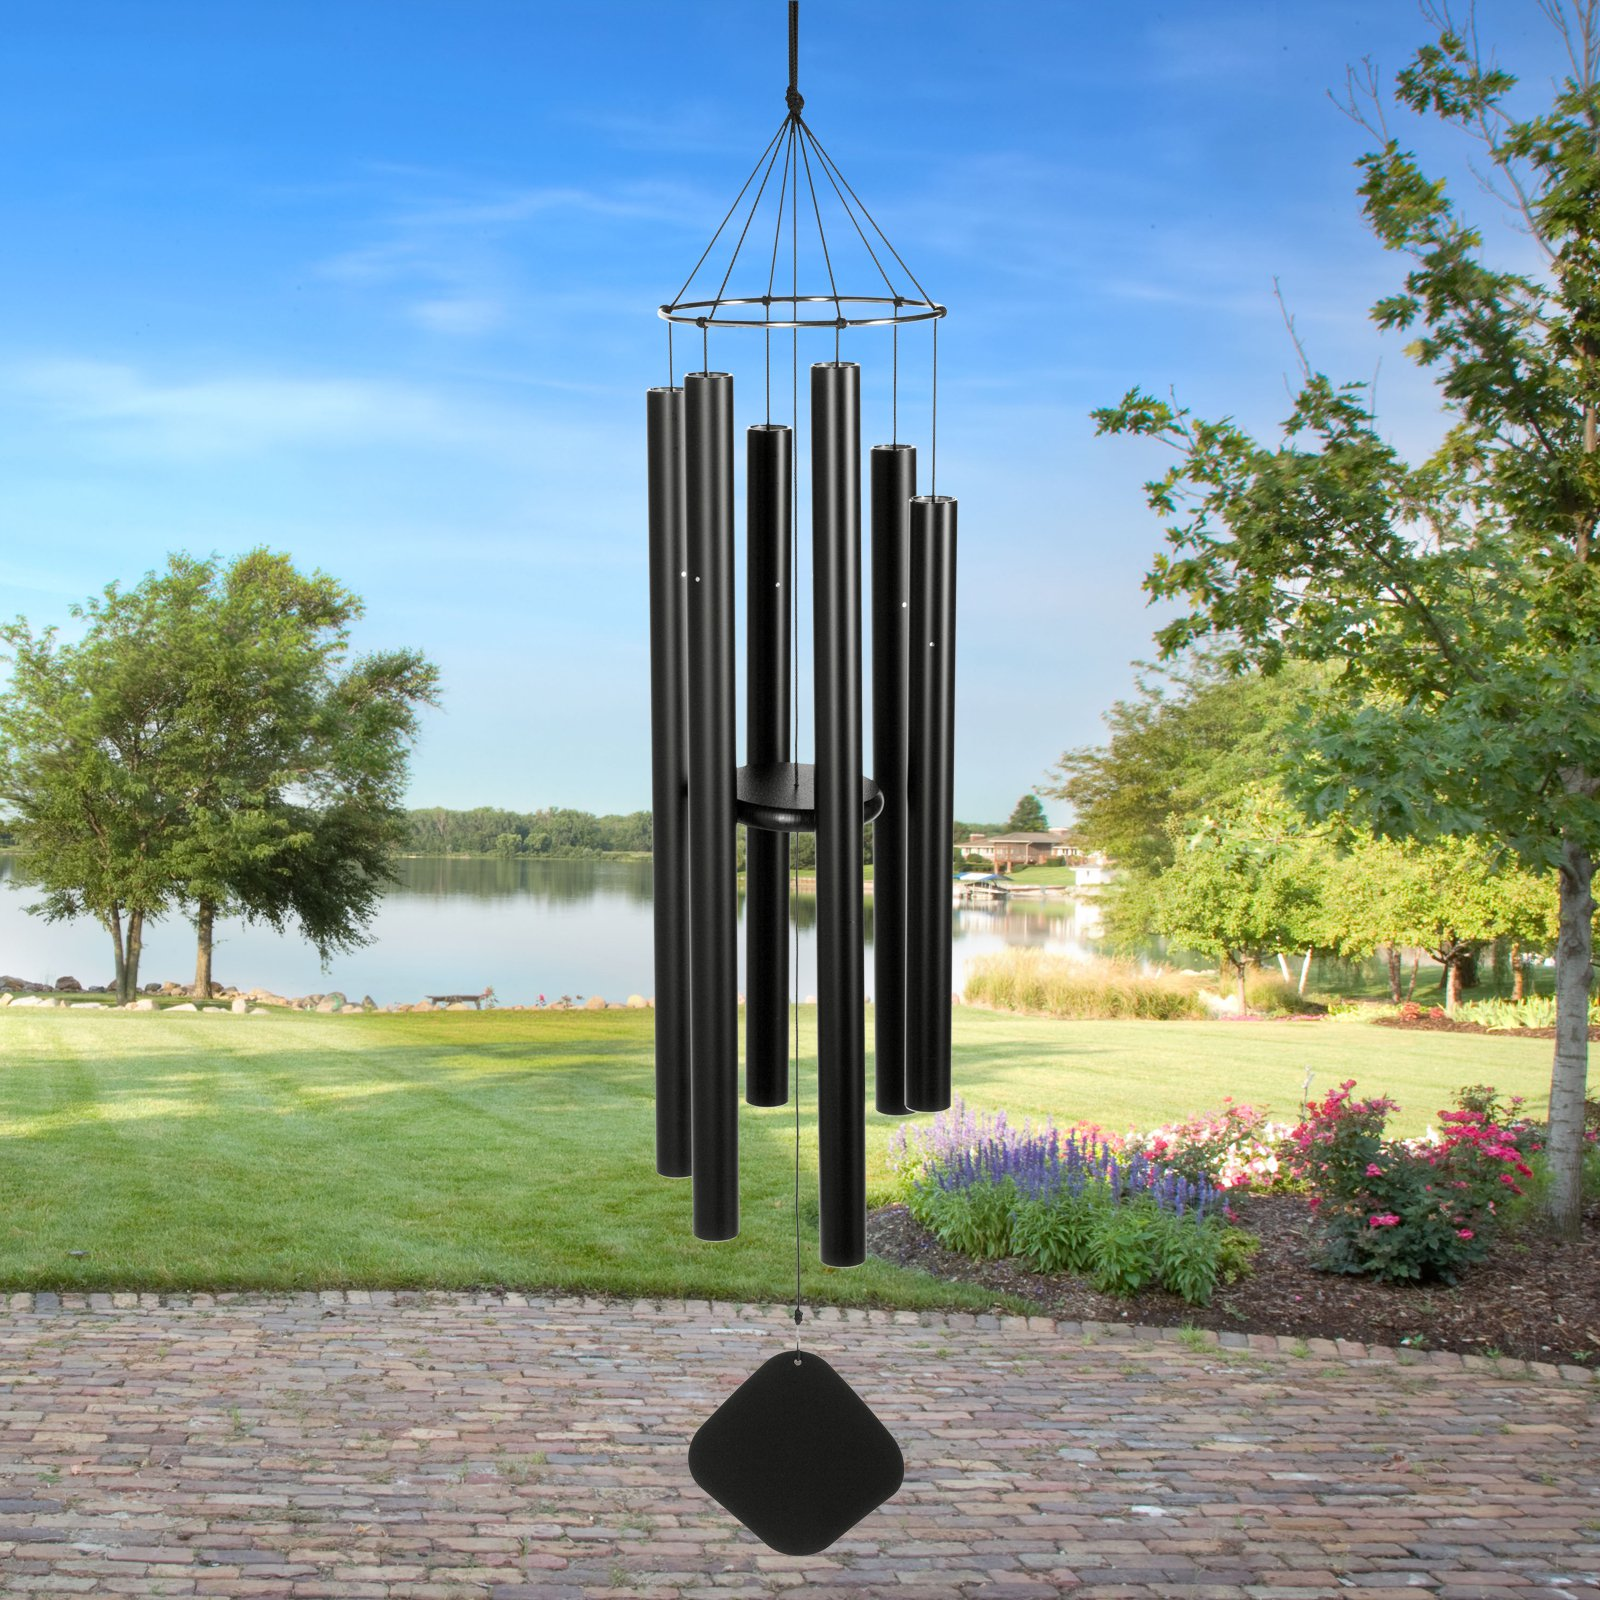 Music of the Spheres Pentatonic Alto 50 Inch Wind Chime by Music of the Spheres Inc